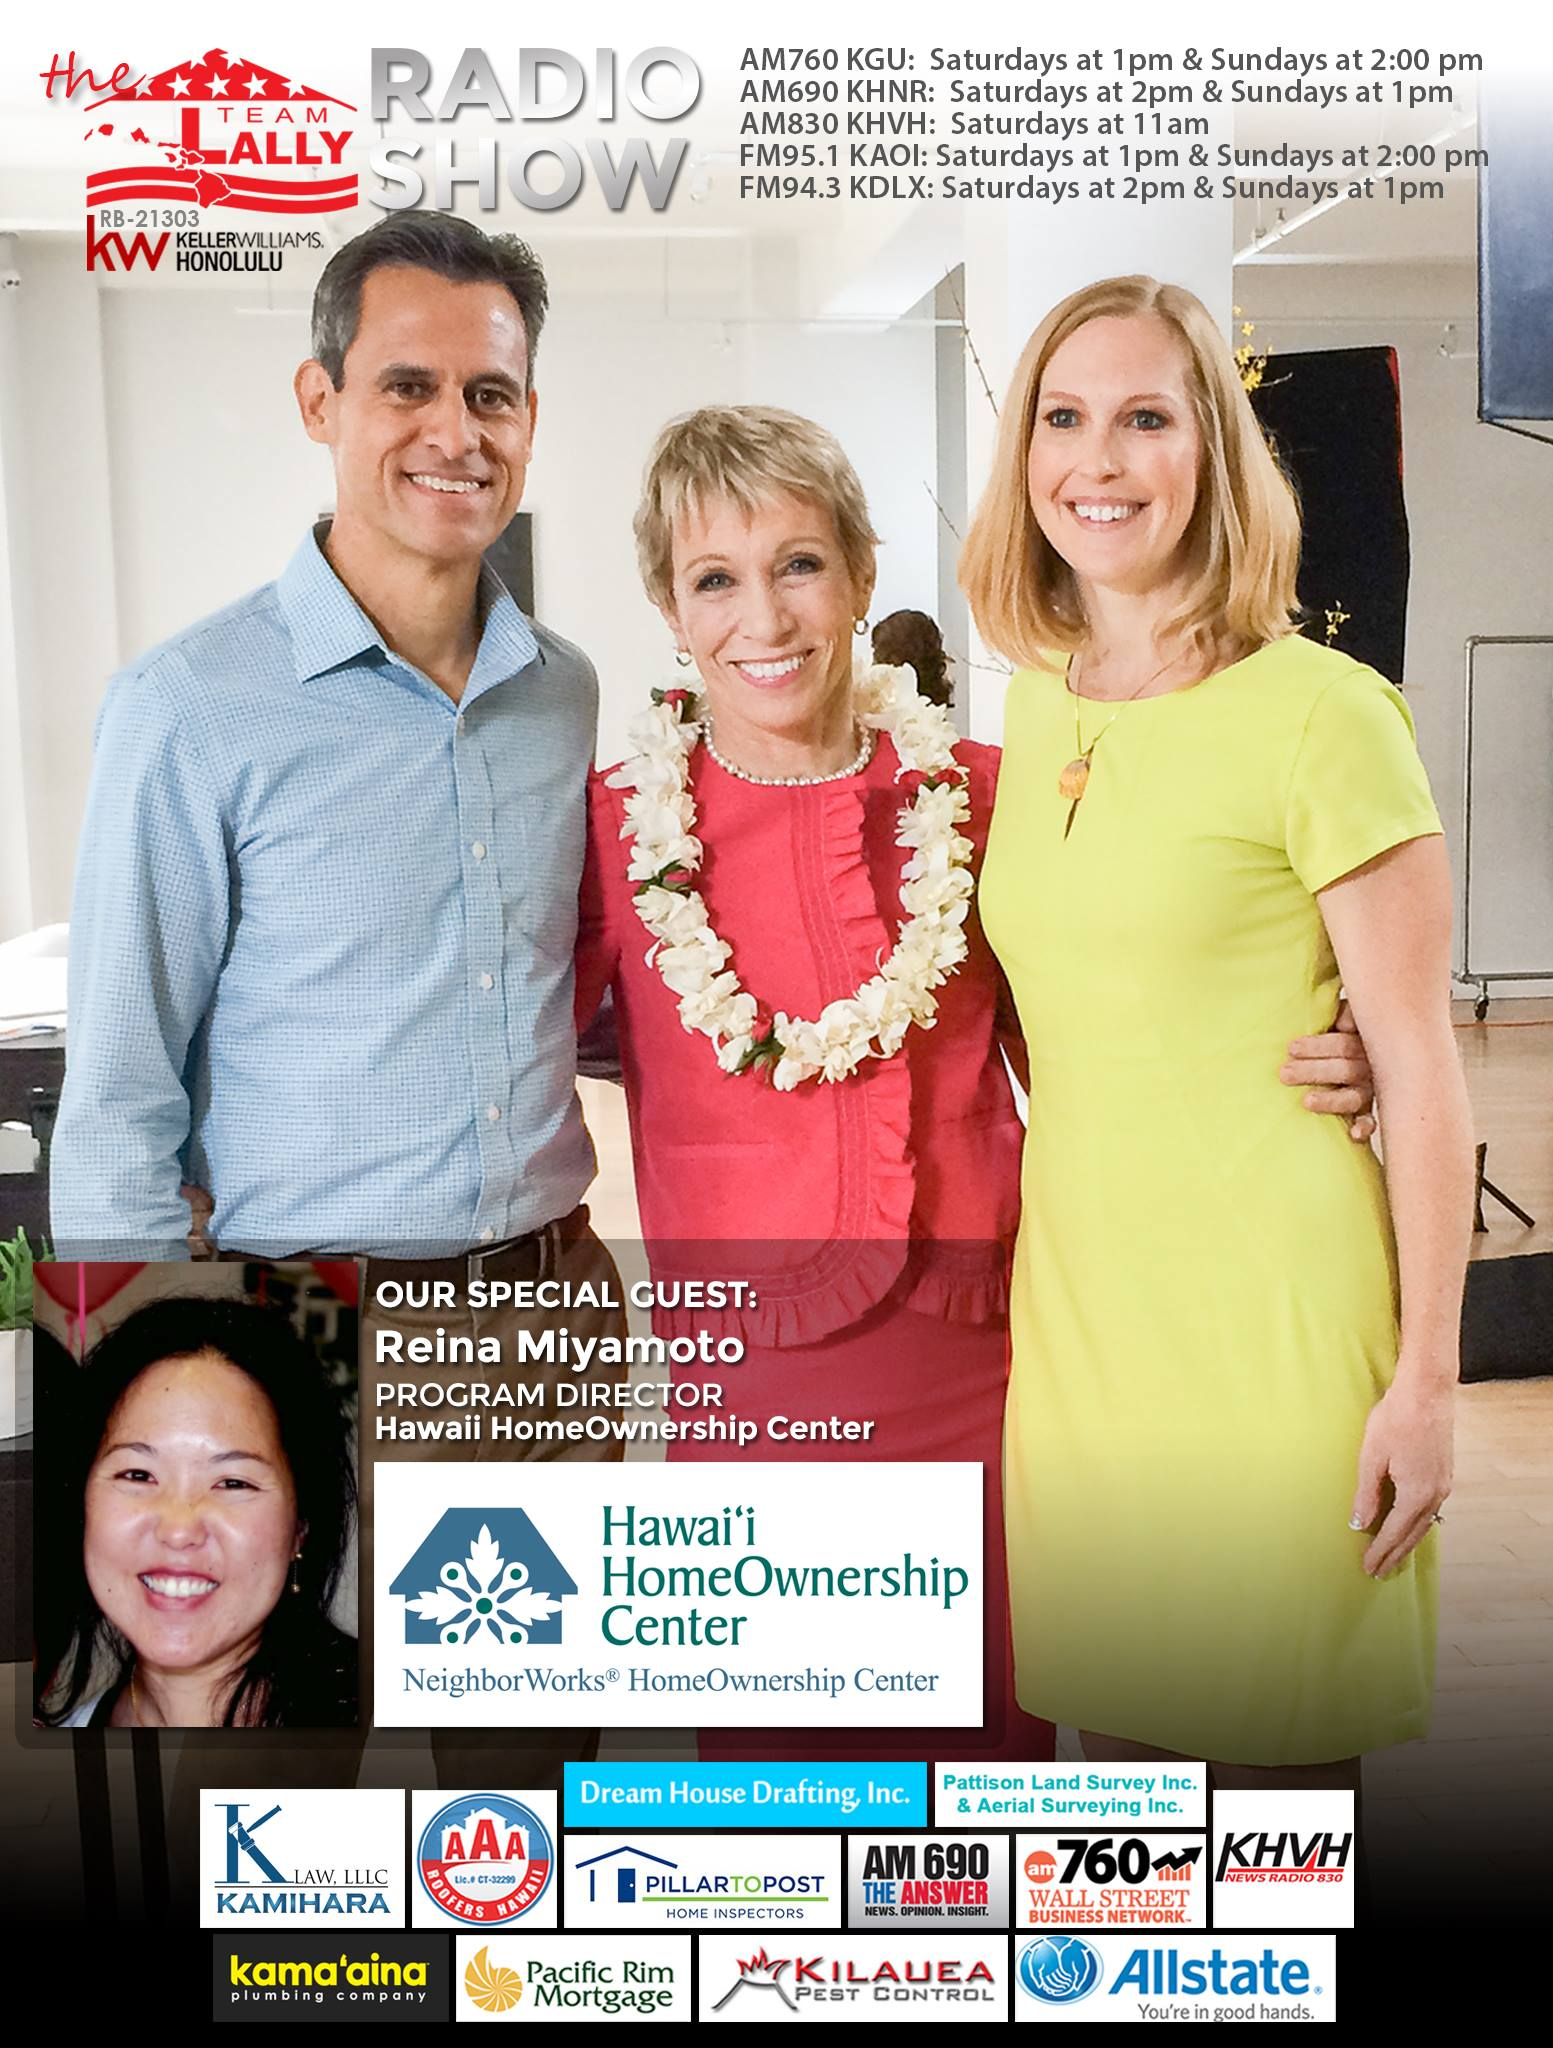 Buying a home in Hawaii with Reina Miyamoto of Hawaii HomeOwnership Center